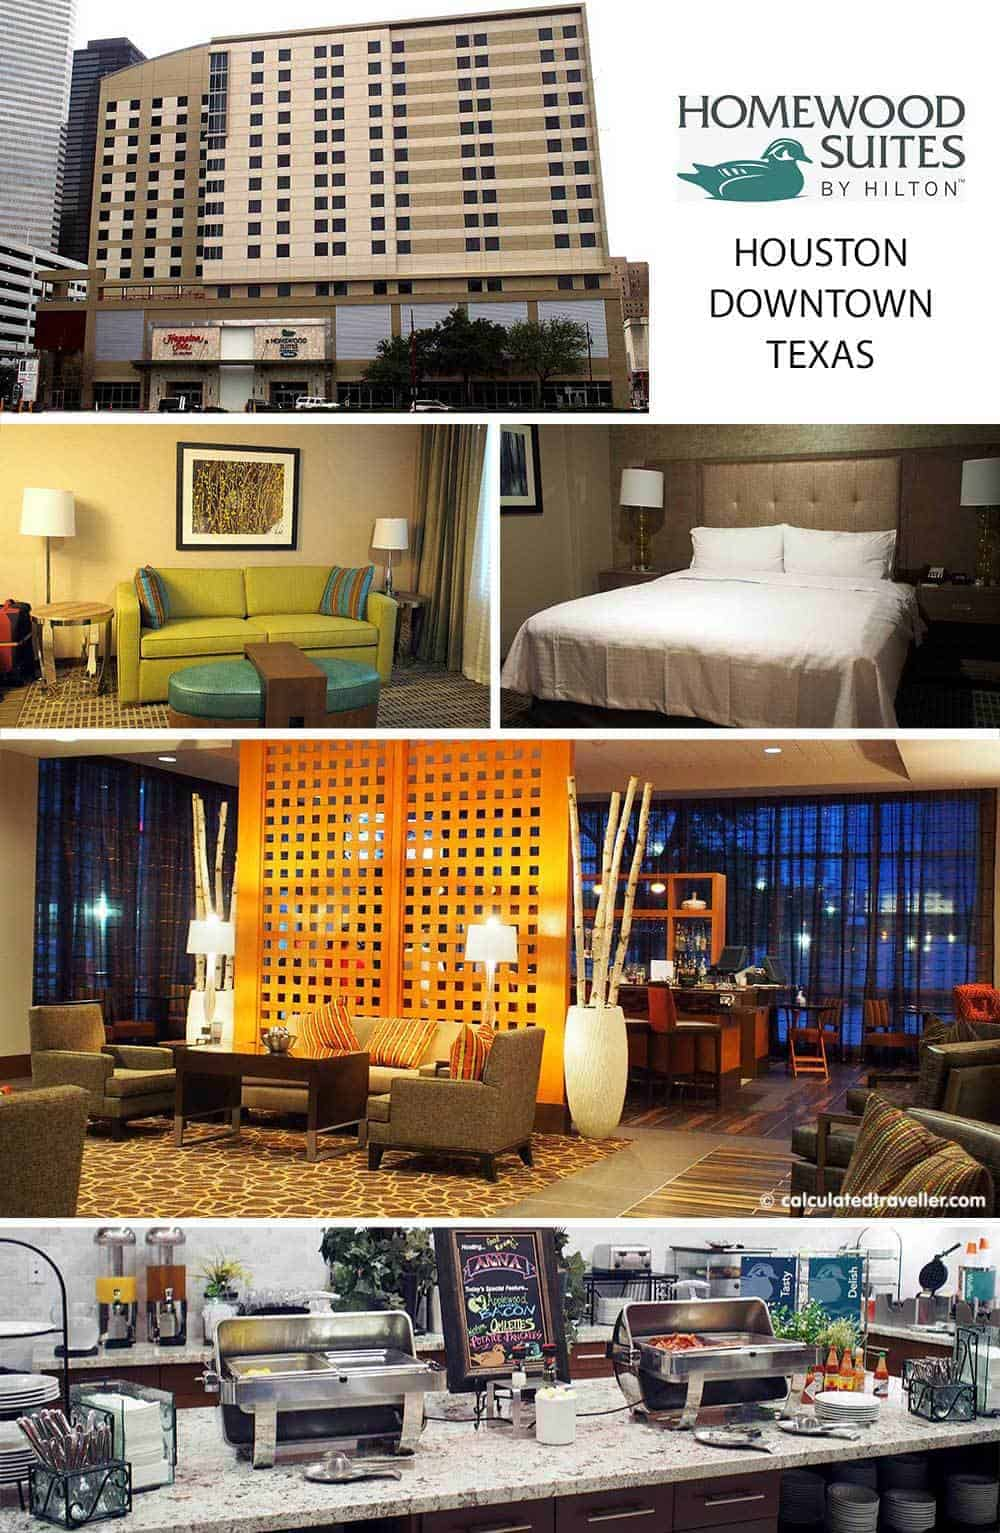 Homewood Suites by Hilton Houston Downtown Texas a review by Calculated Traveller